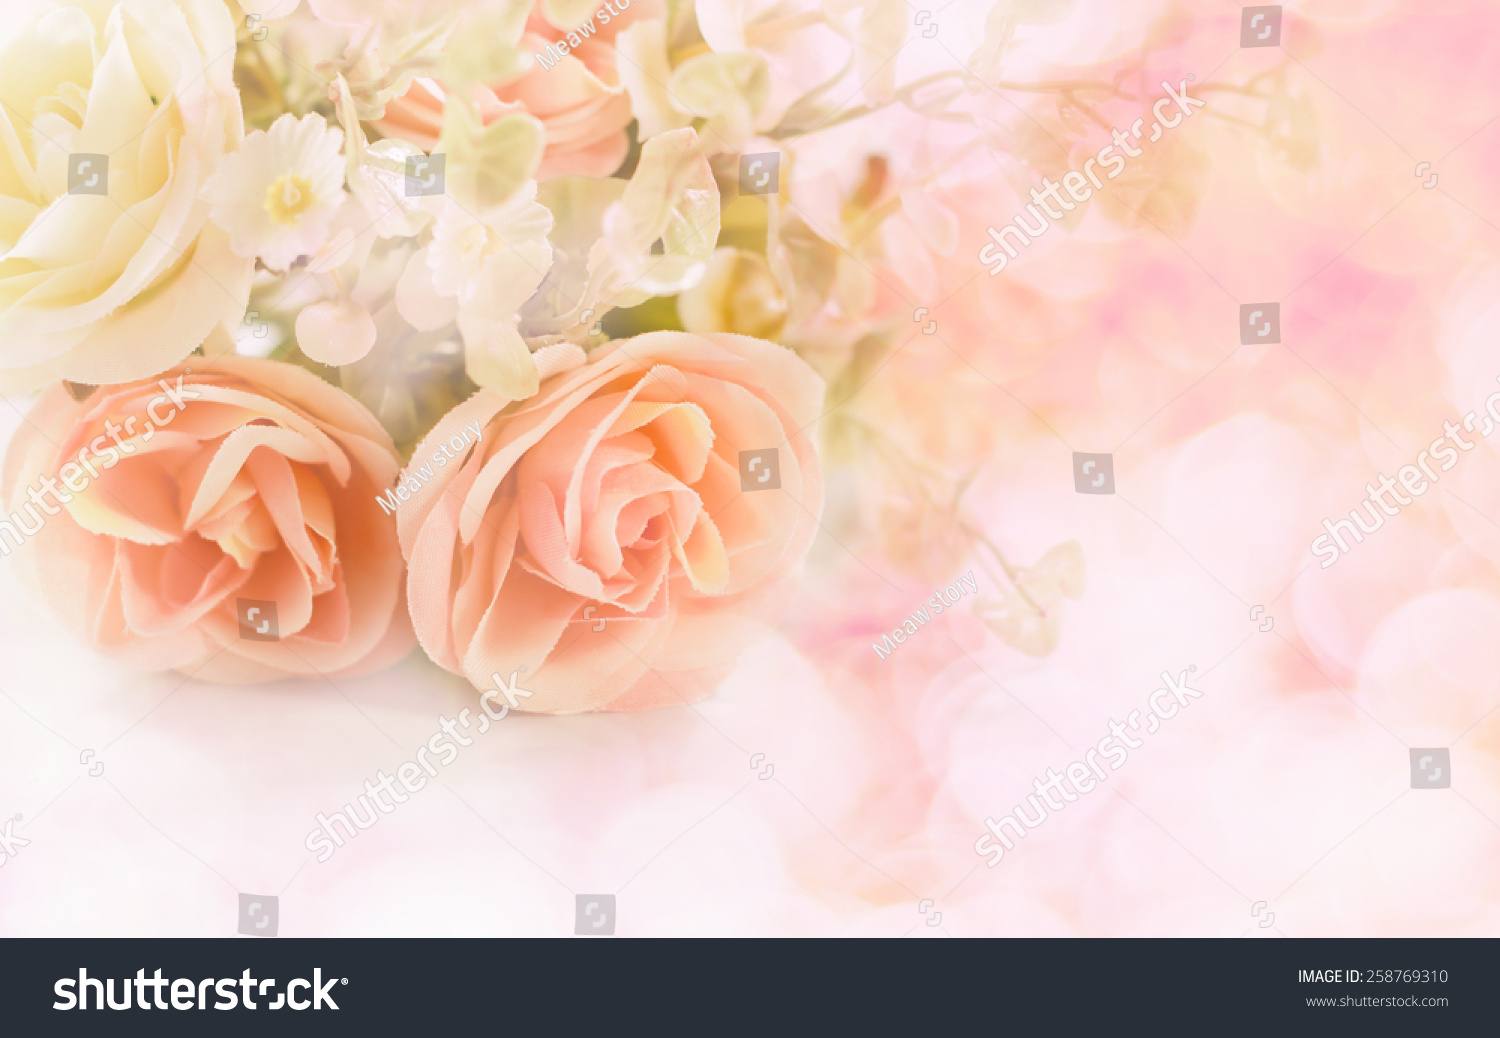 Blurry Sweet Color Roses Bokeh Texture Stock Photo Edit Now Vintage Story English Rose Flower Pink Of In Soft Blur For Background With Pastel Retro